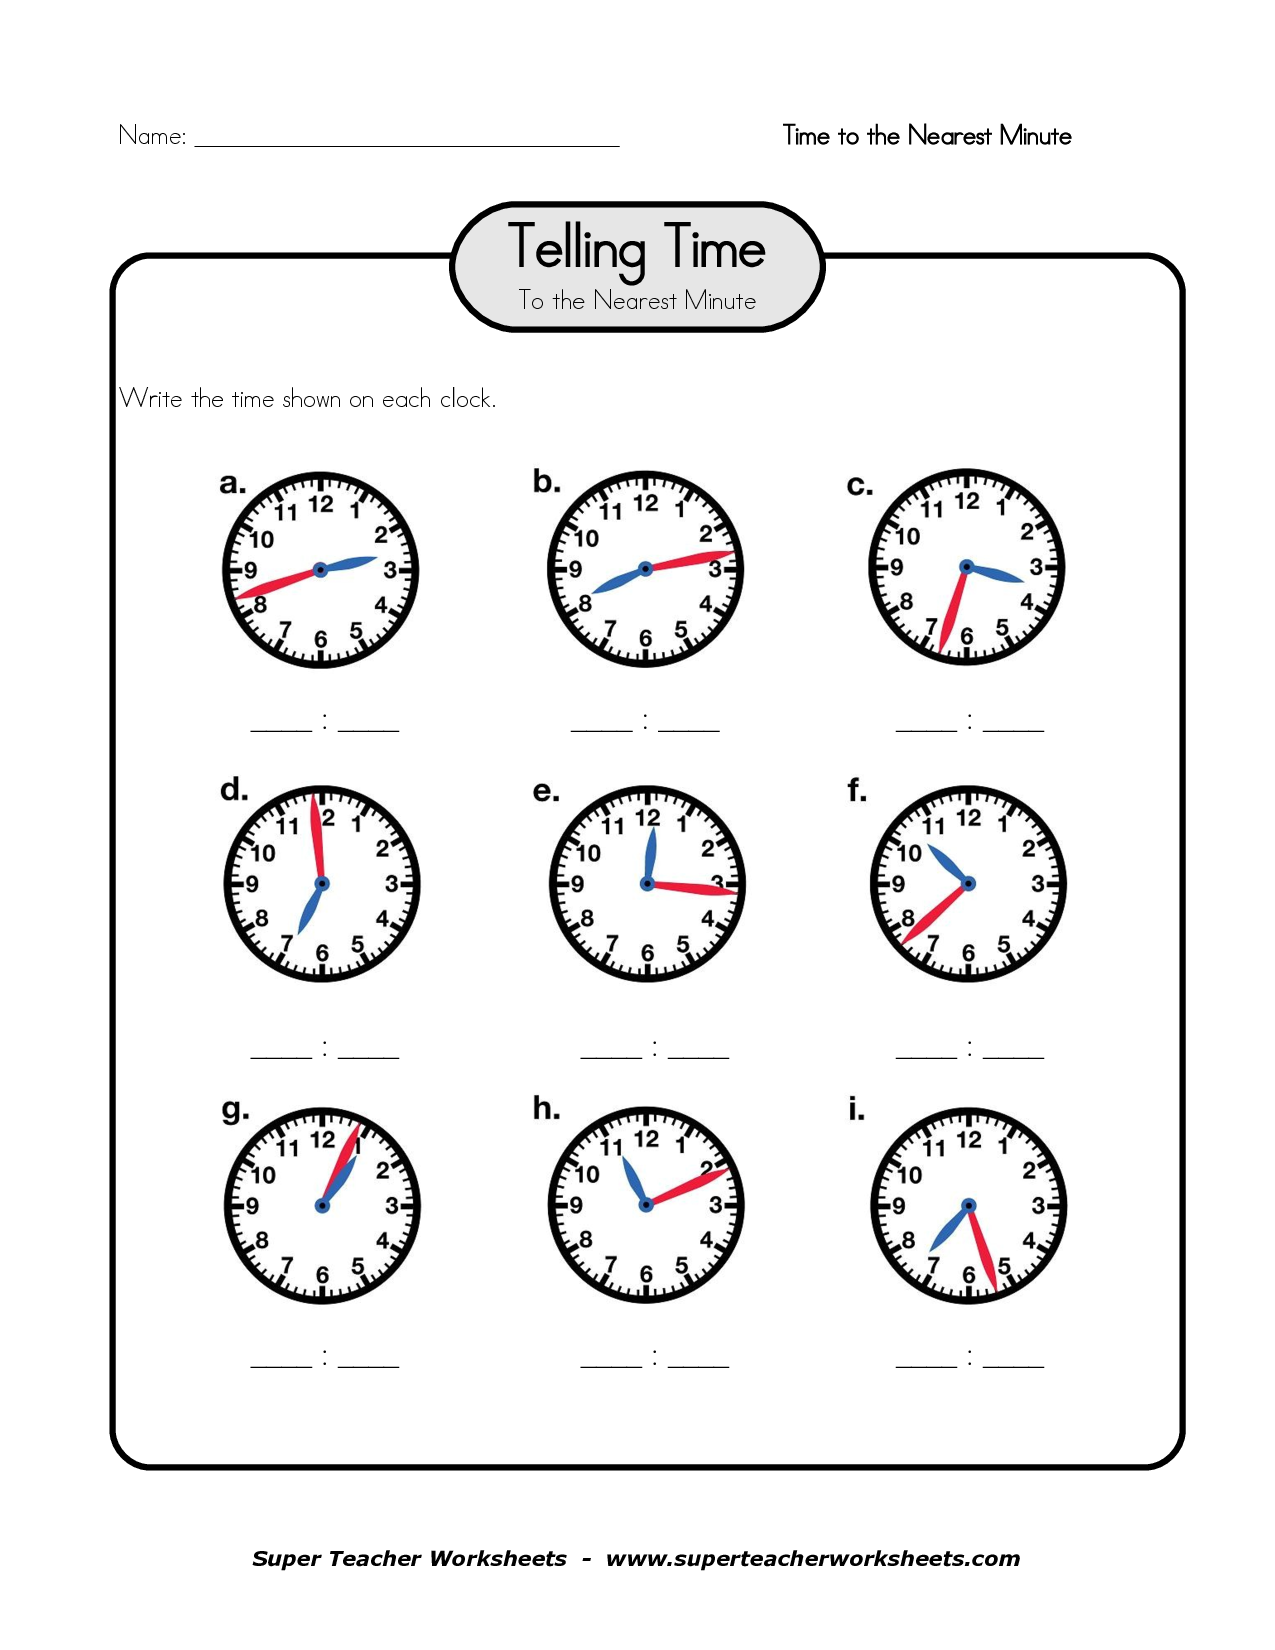 Elapsed Time Worksheet For Third Graders